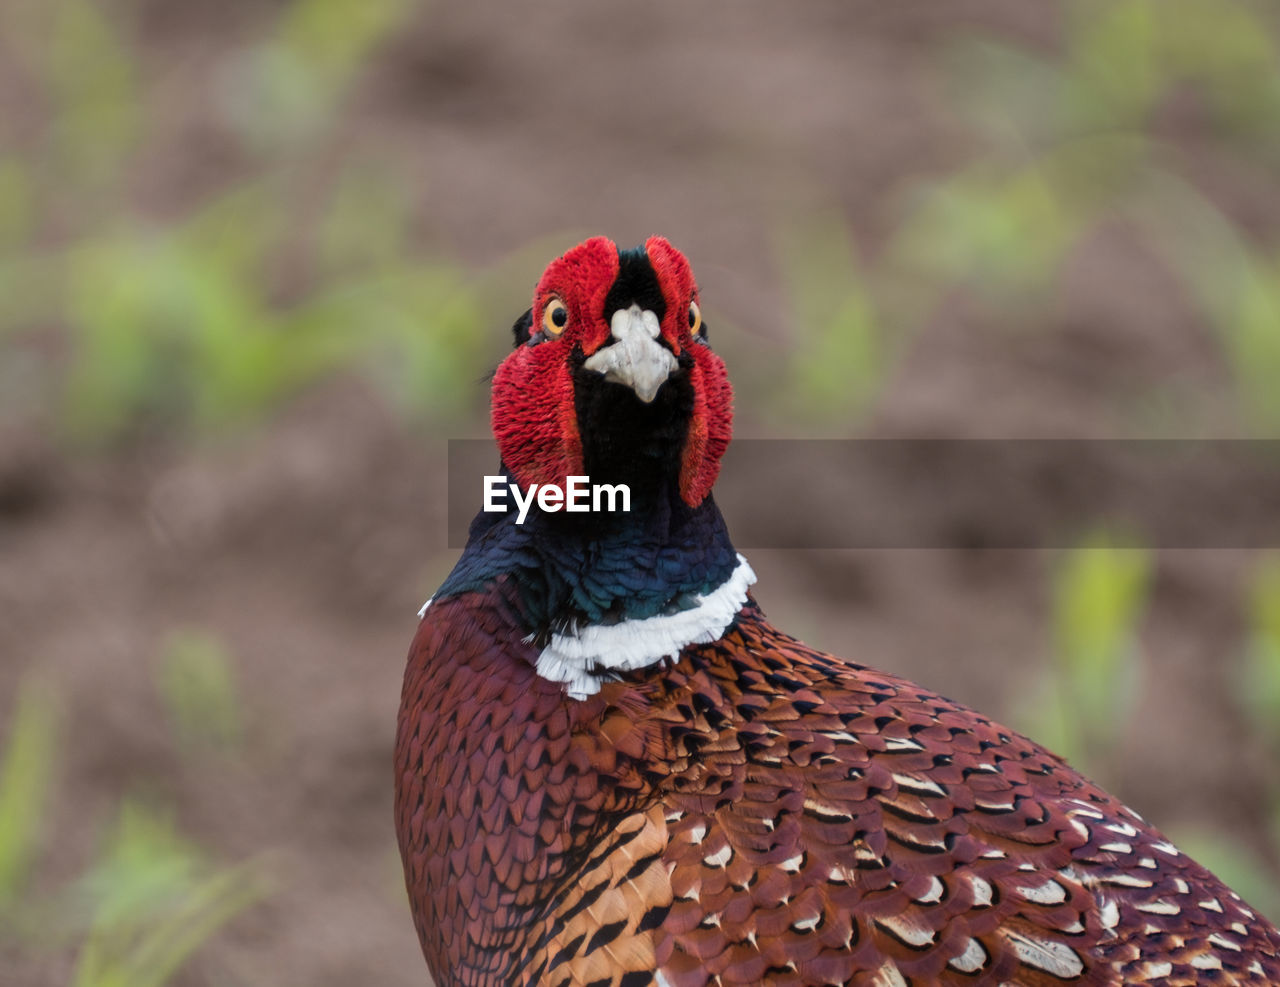 one animal, animal themes, focus on foreground, bird, red, animals in the wild, day, no people, animal wildlife, nature, rooster, cockerel, outdoors, domestic animals, close-up, mammal